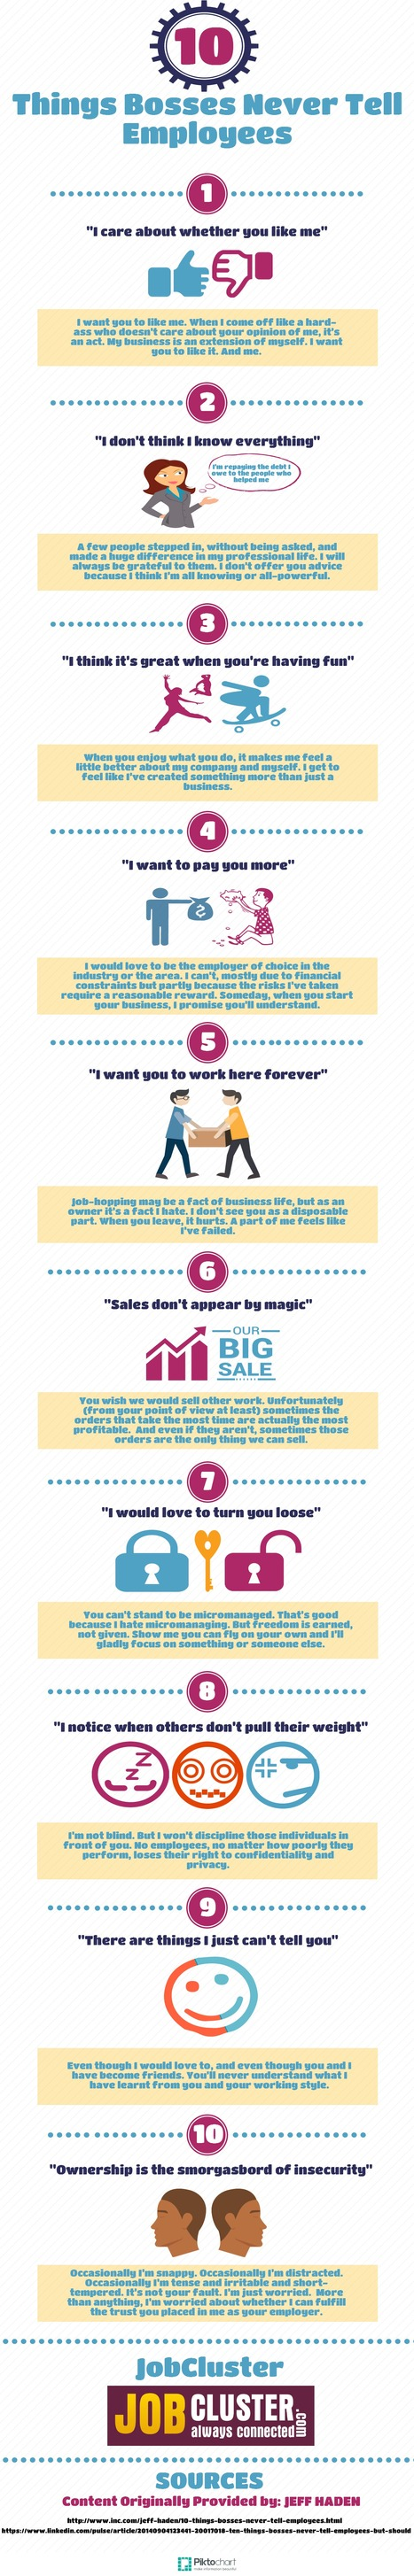 10 Things Bosses Will Never Tell Employees [INFOGRAPHIC] | Latest Career News & Advice | Scoop.it